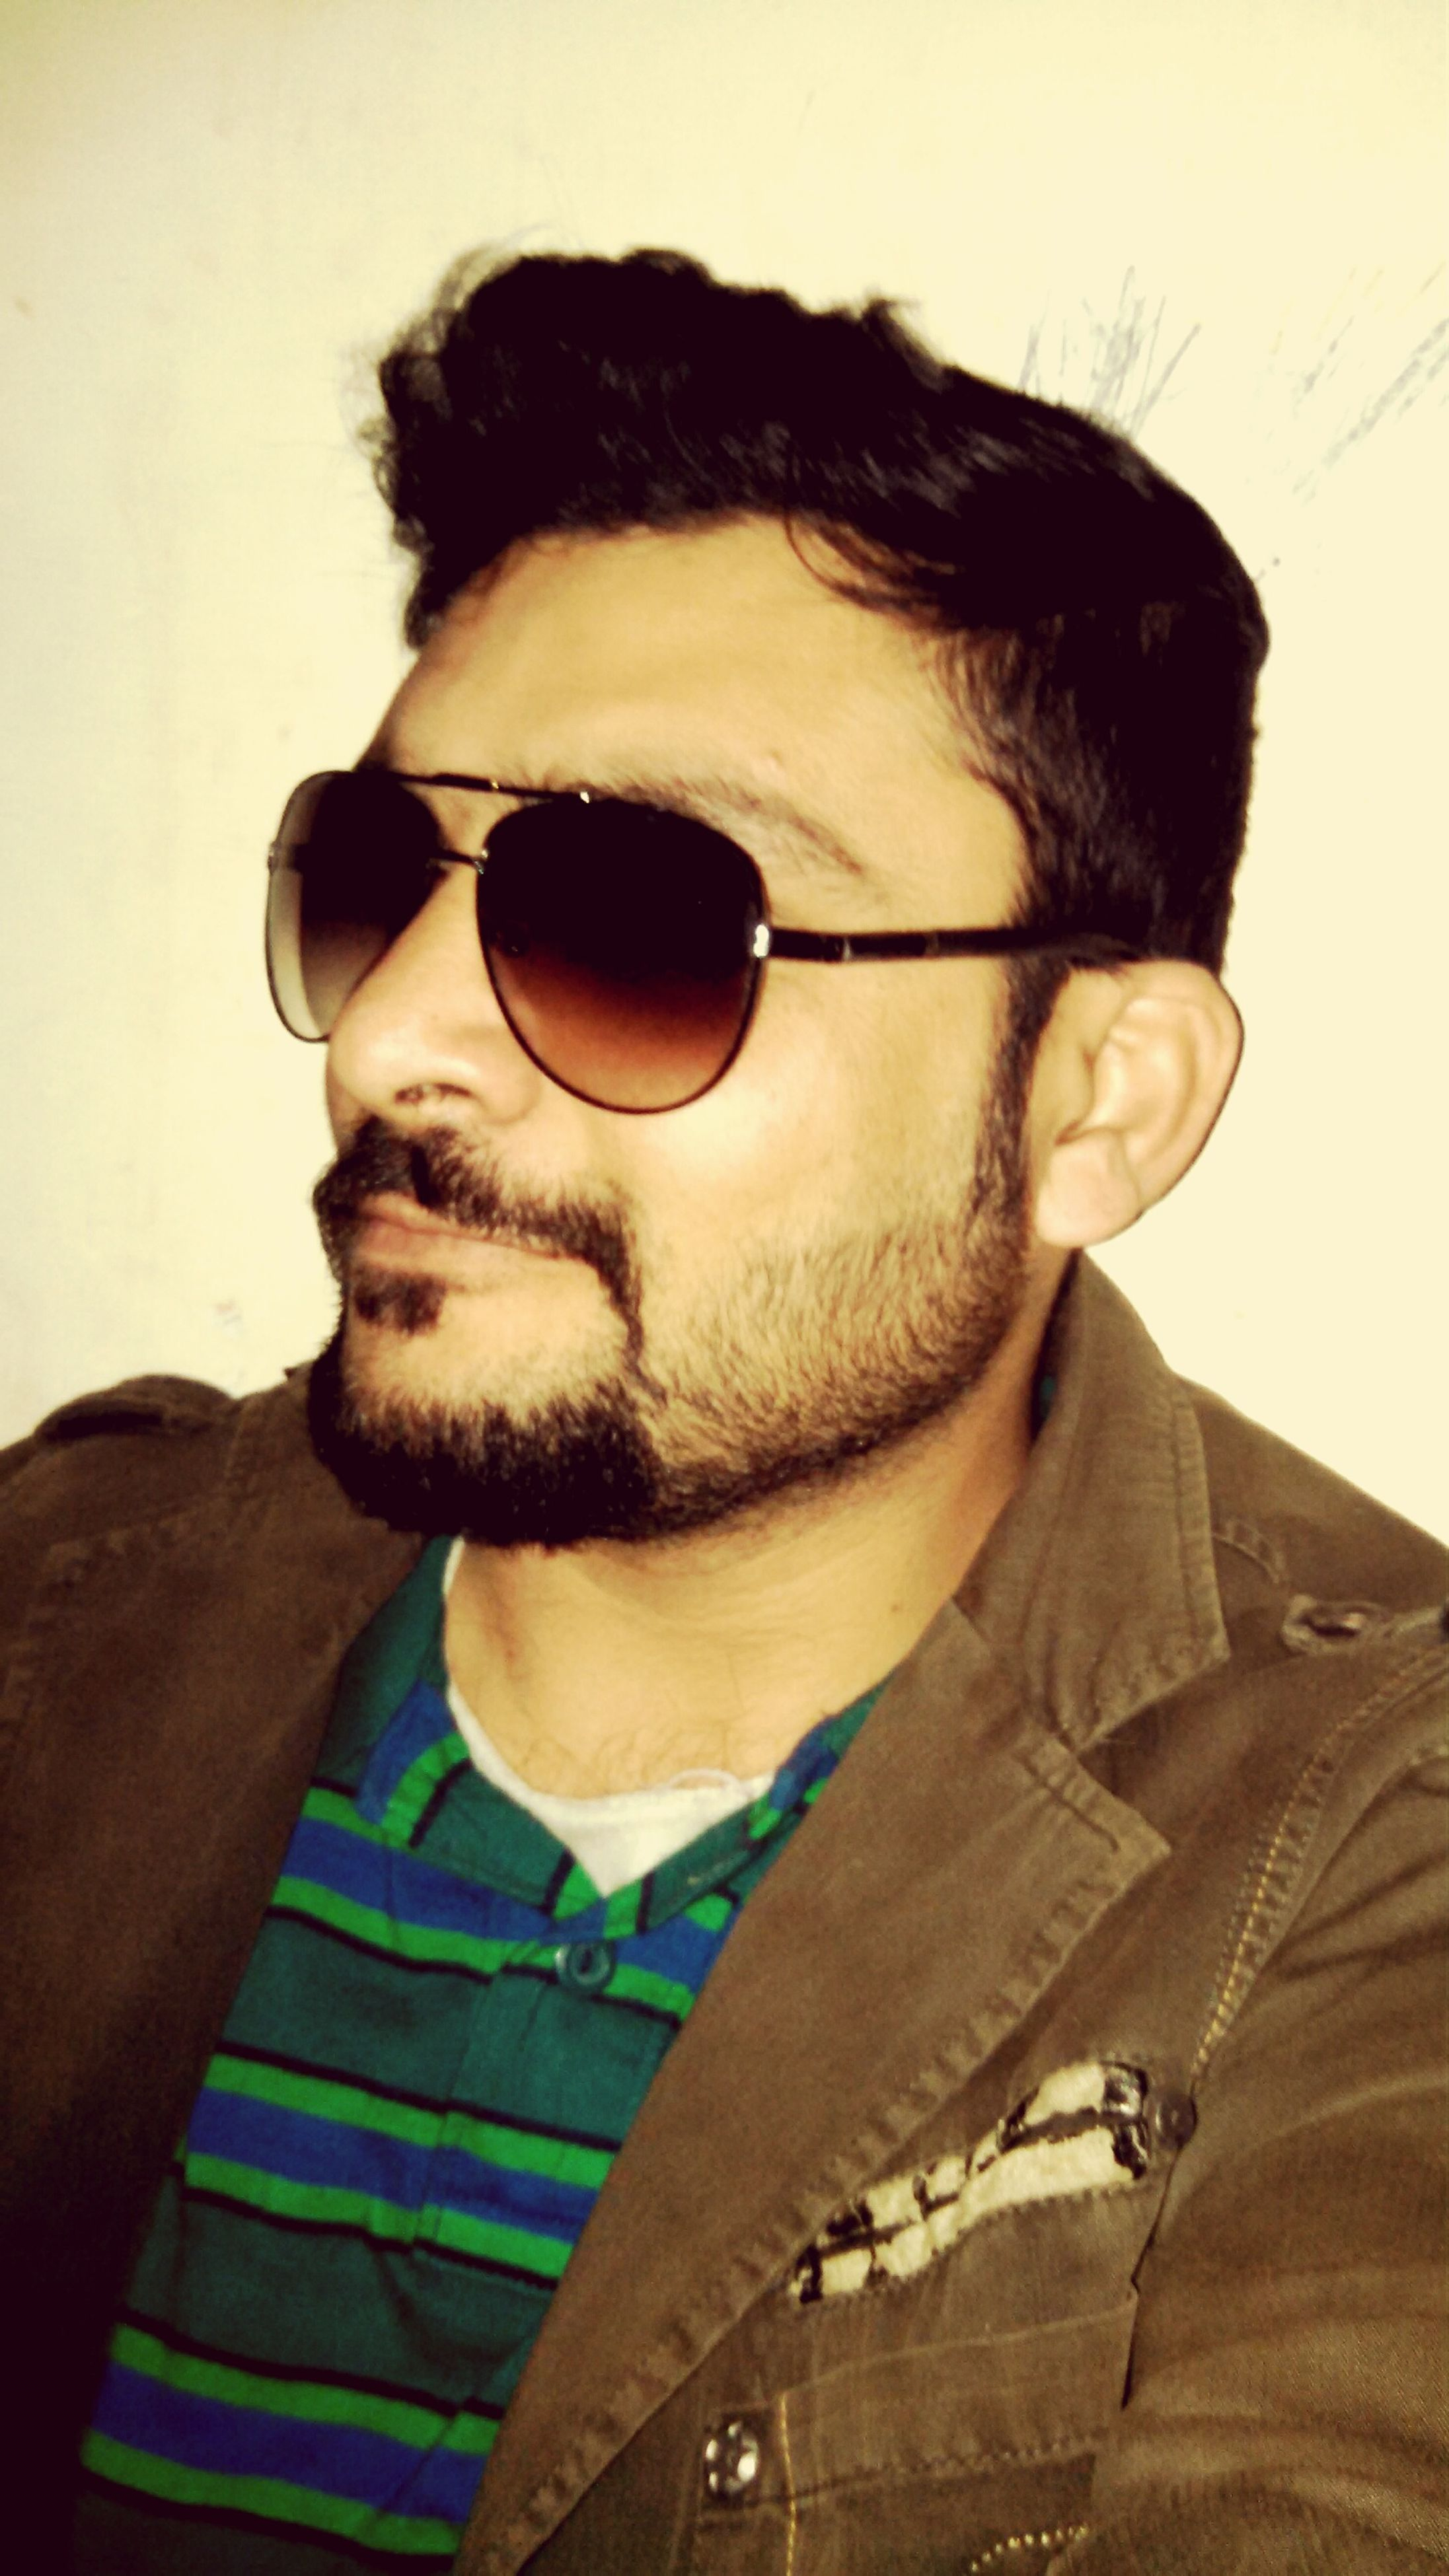 portrait, sunglasses, young adult, looking at camera, headshot, young men, front view, lifestyles, person, beard, close-up, mid adult, eyeglasses, mid adult men, leisure activity, indoors, head and shoulders, casual clothing